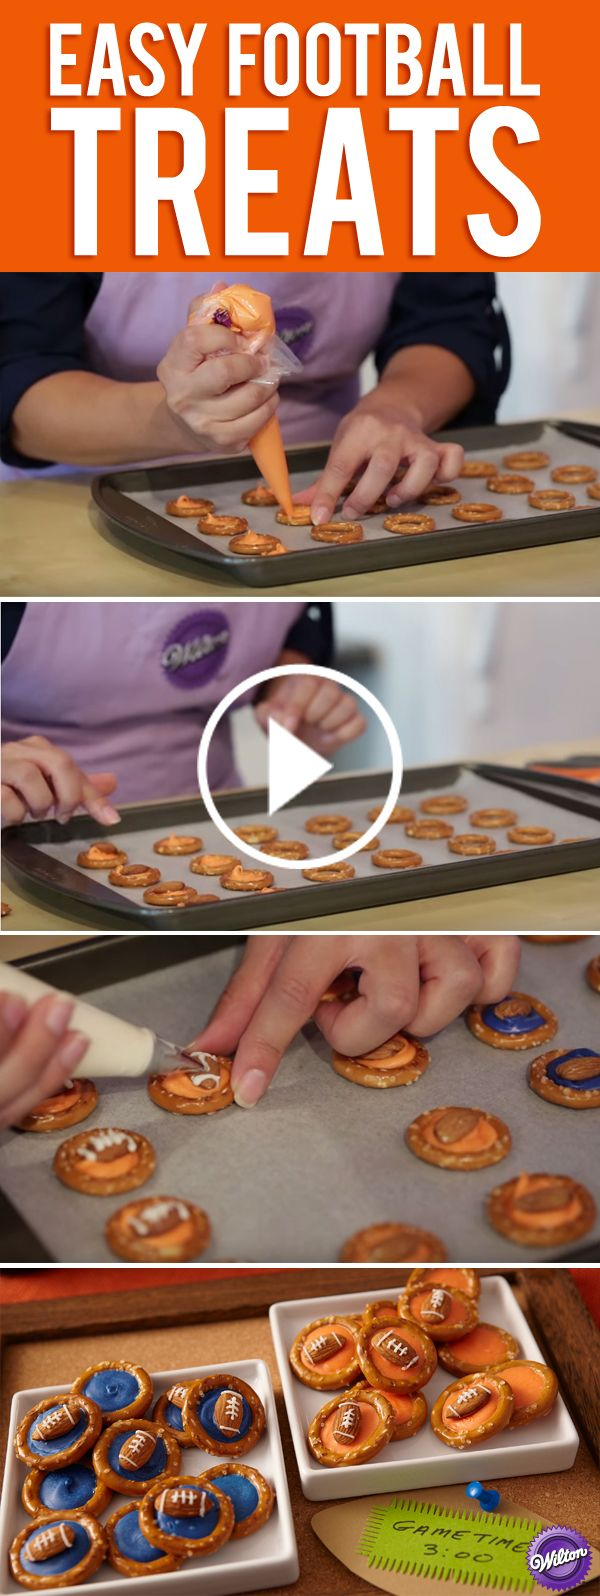 During the game, everyone will be huddling up to snack on these sweet and salty treats! An almond football goes over the middle of a pretzel ring, with easy-melting Wilton Candy Melts filling the gap in your favorite team colors (we went with blue and orange here).